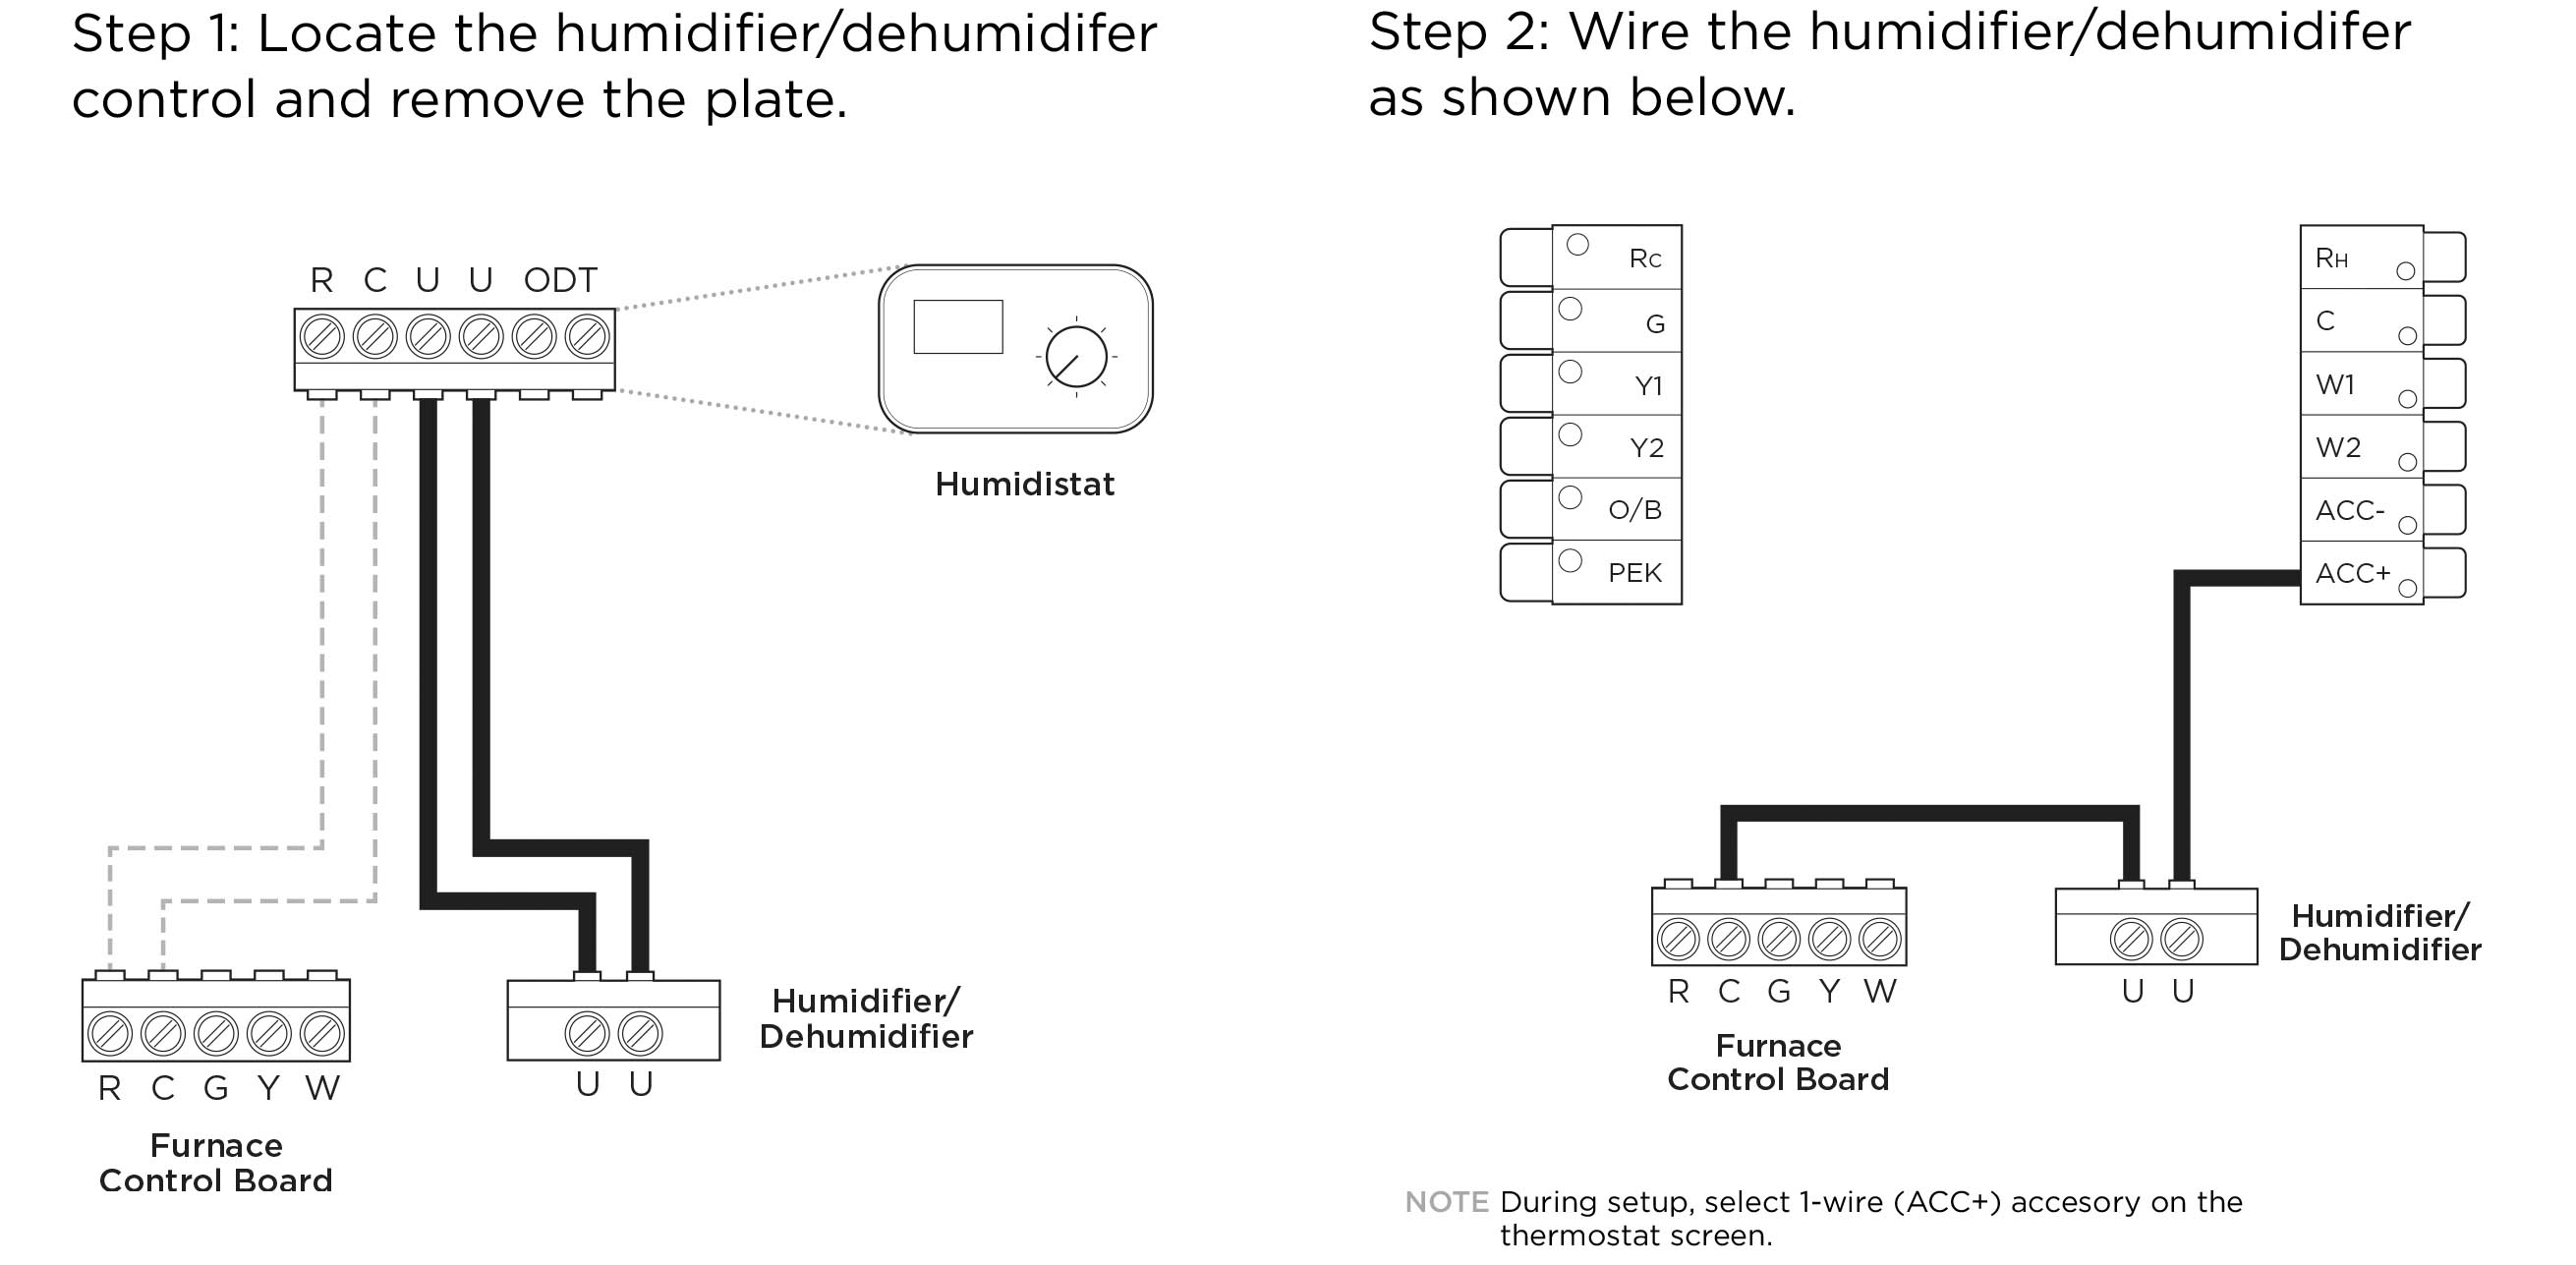 Furnace to wire humidifier How to